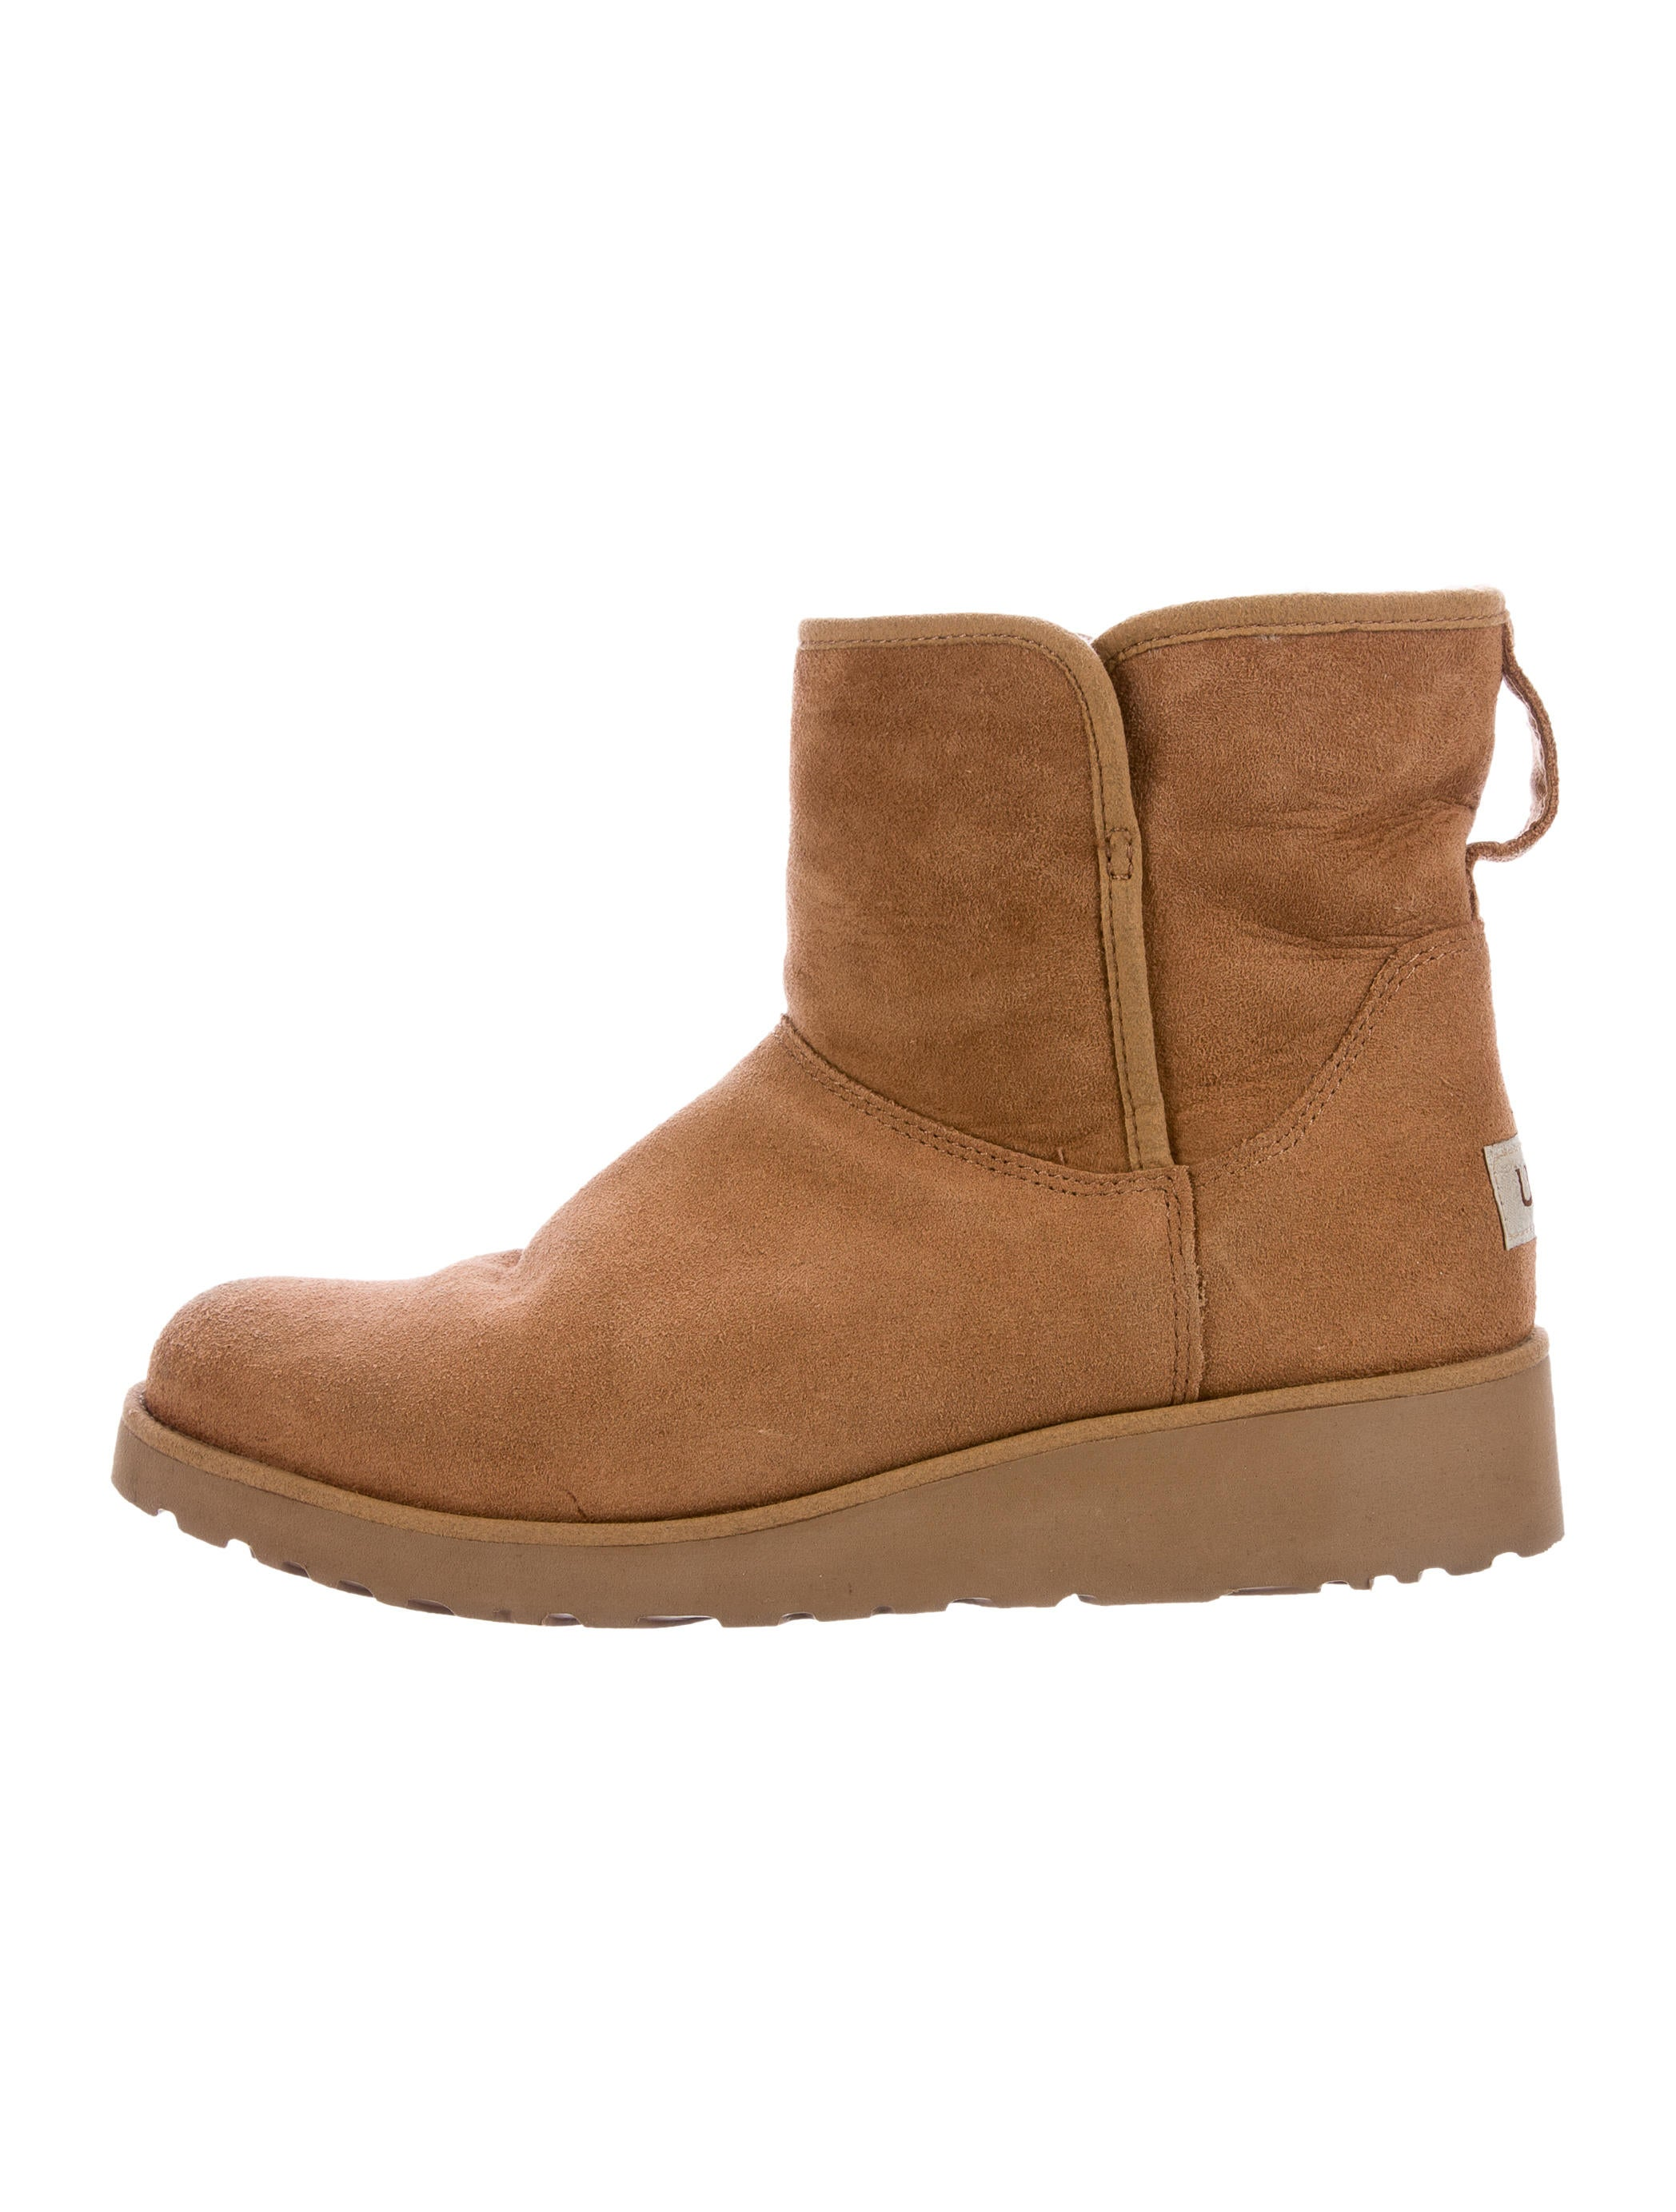 ugg australia suede ankle boots shoes wuugg21211 the